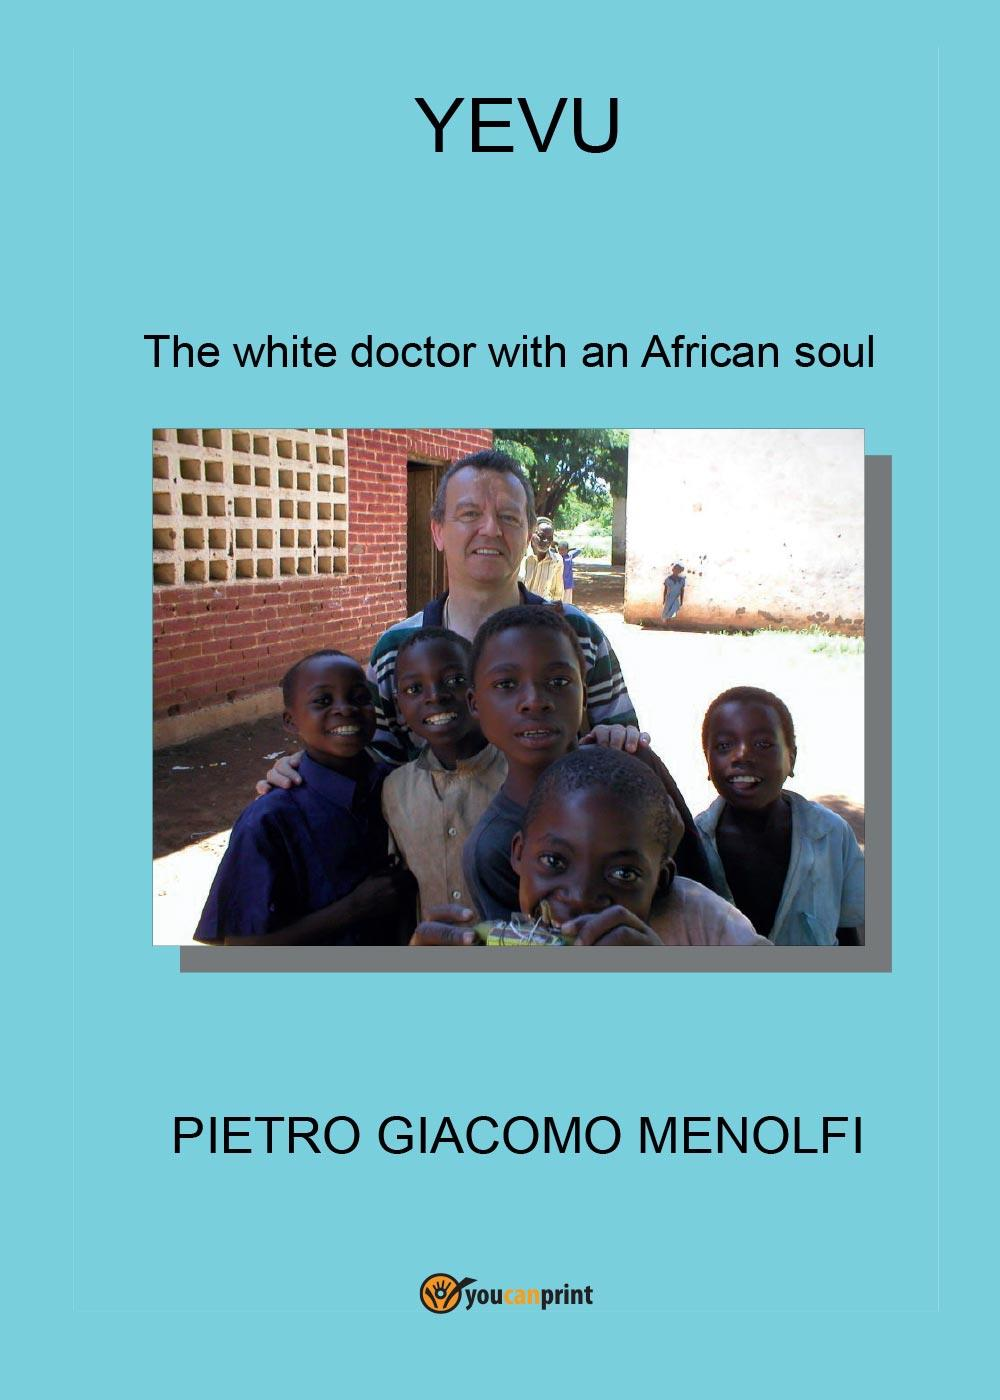 YEVU (the white doctor with an African soul)